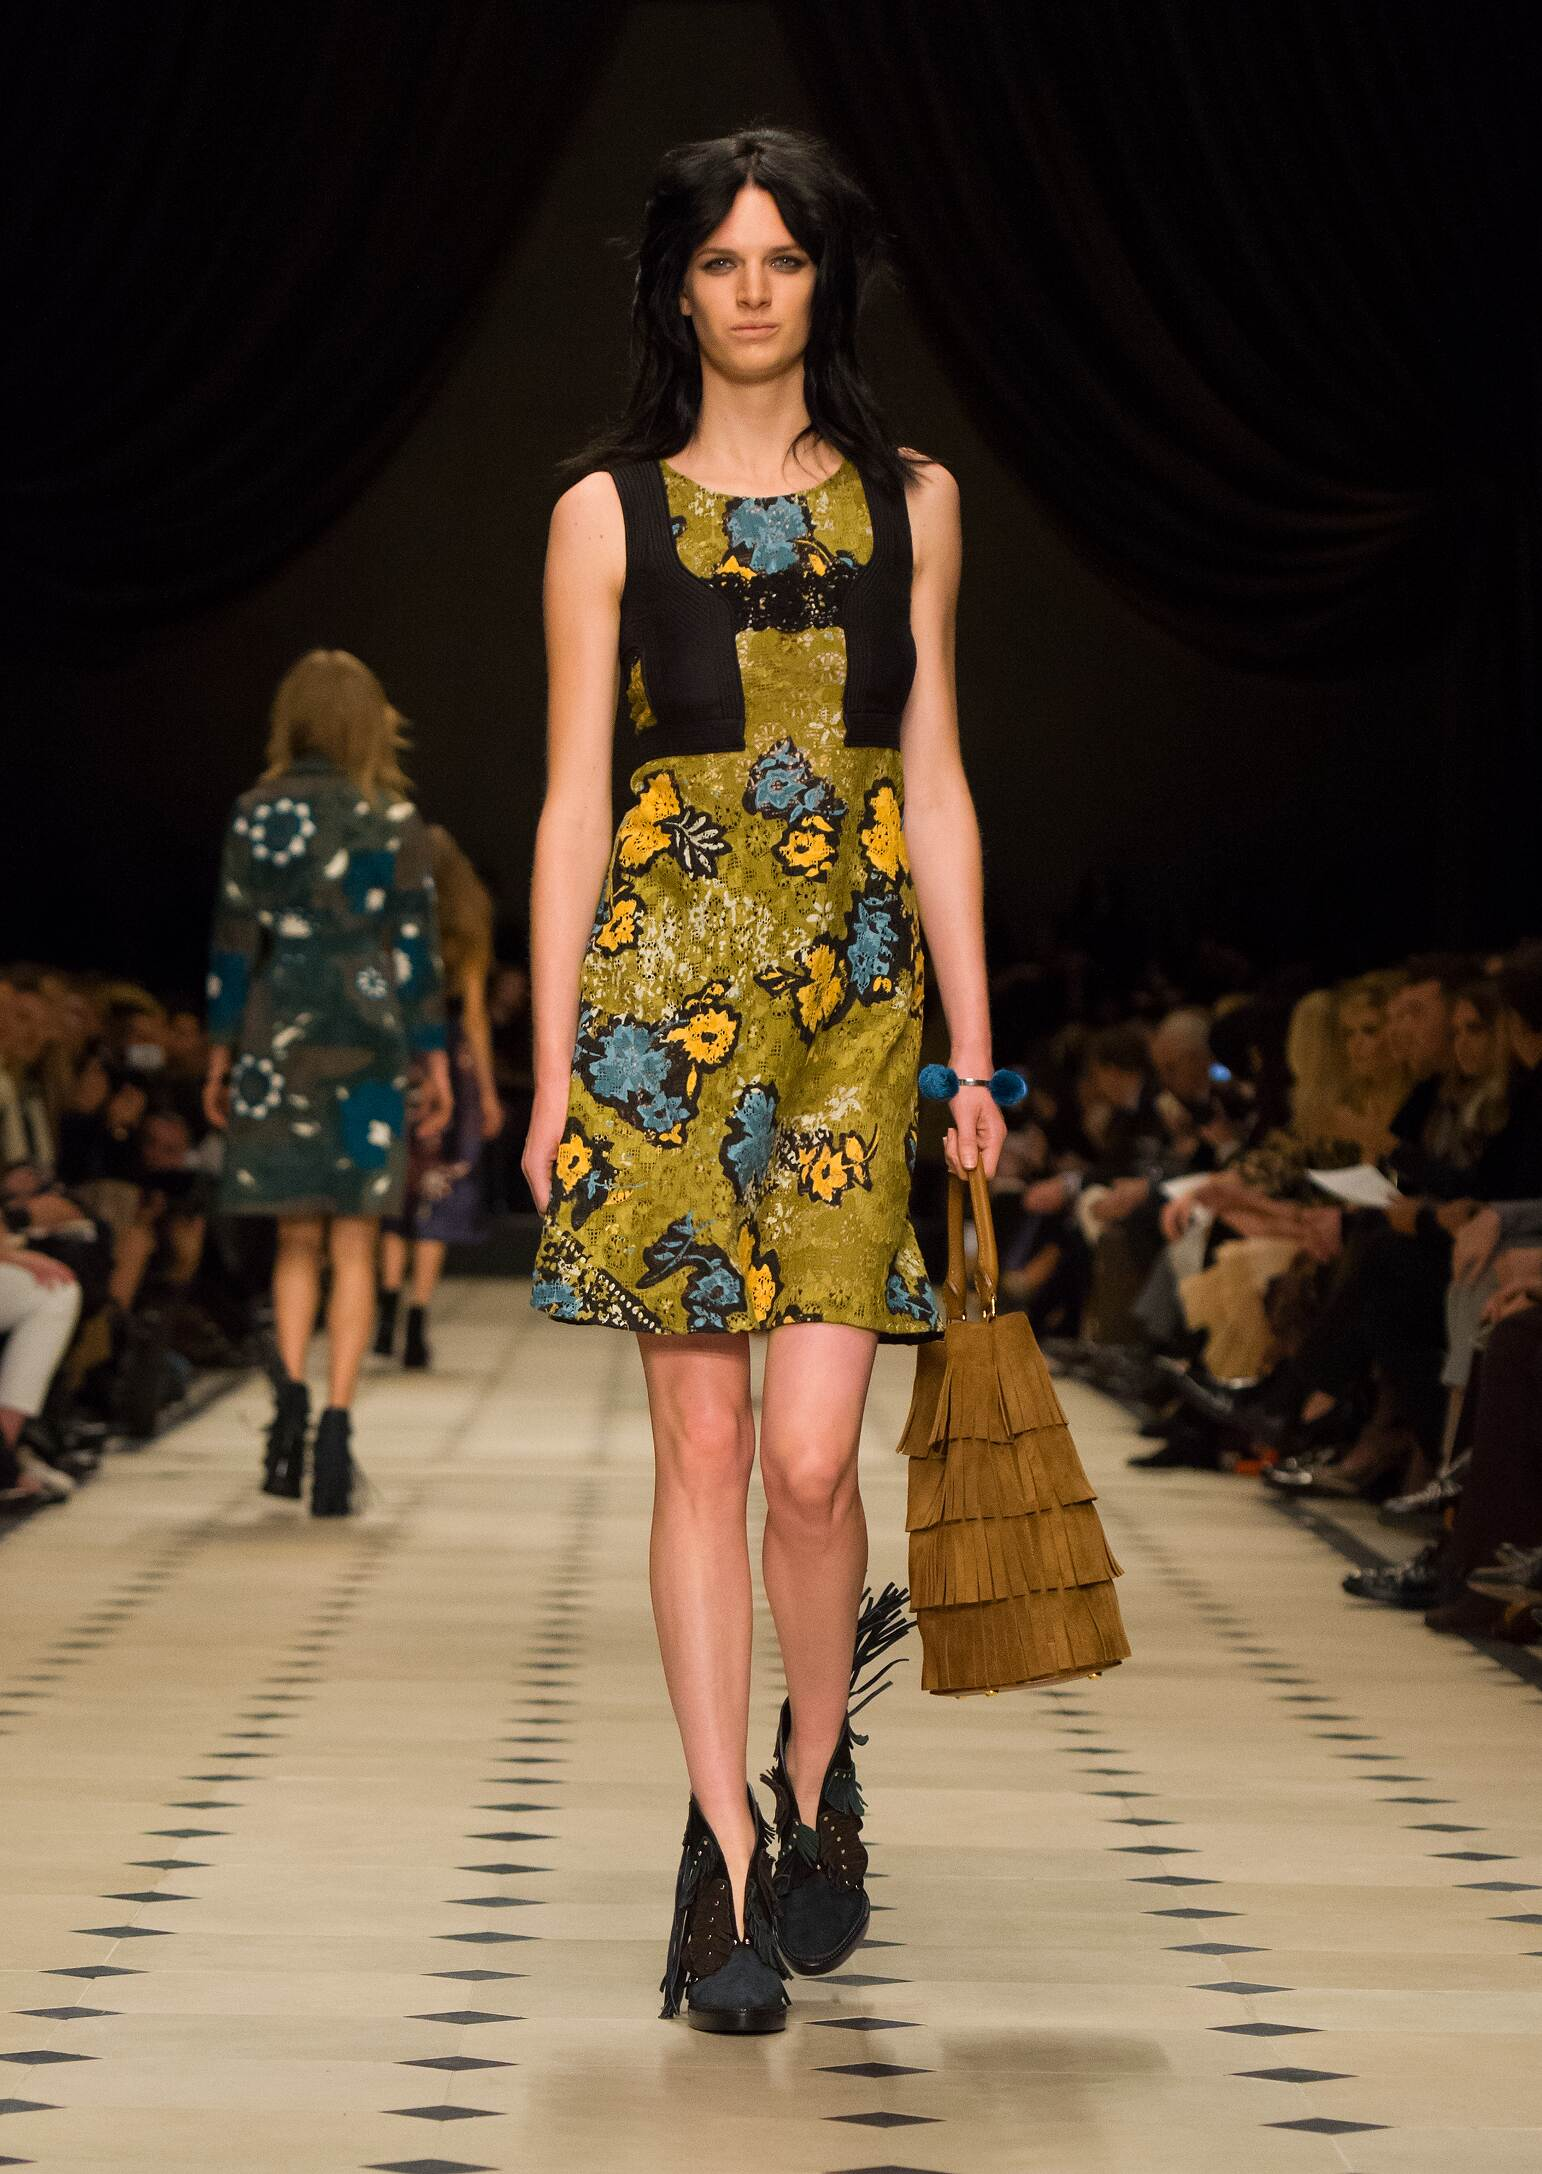 Catwalk Burberry Prorsum Womenswear Collection Winter 2015